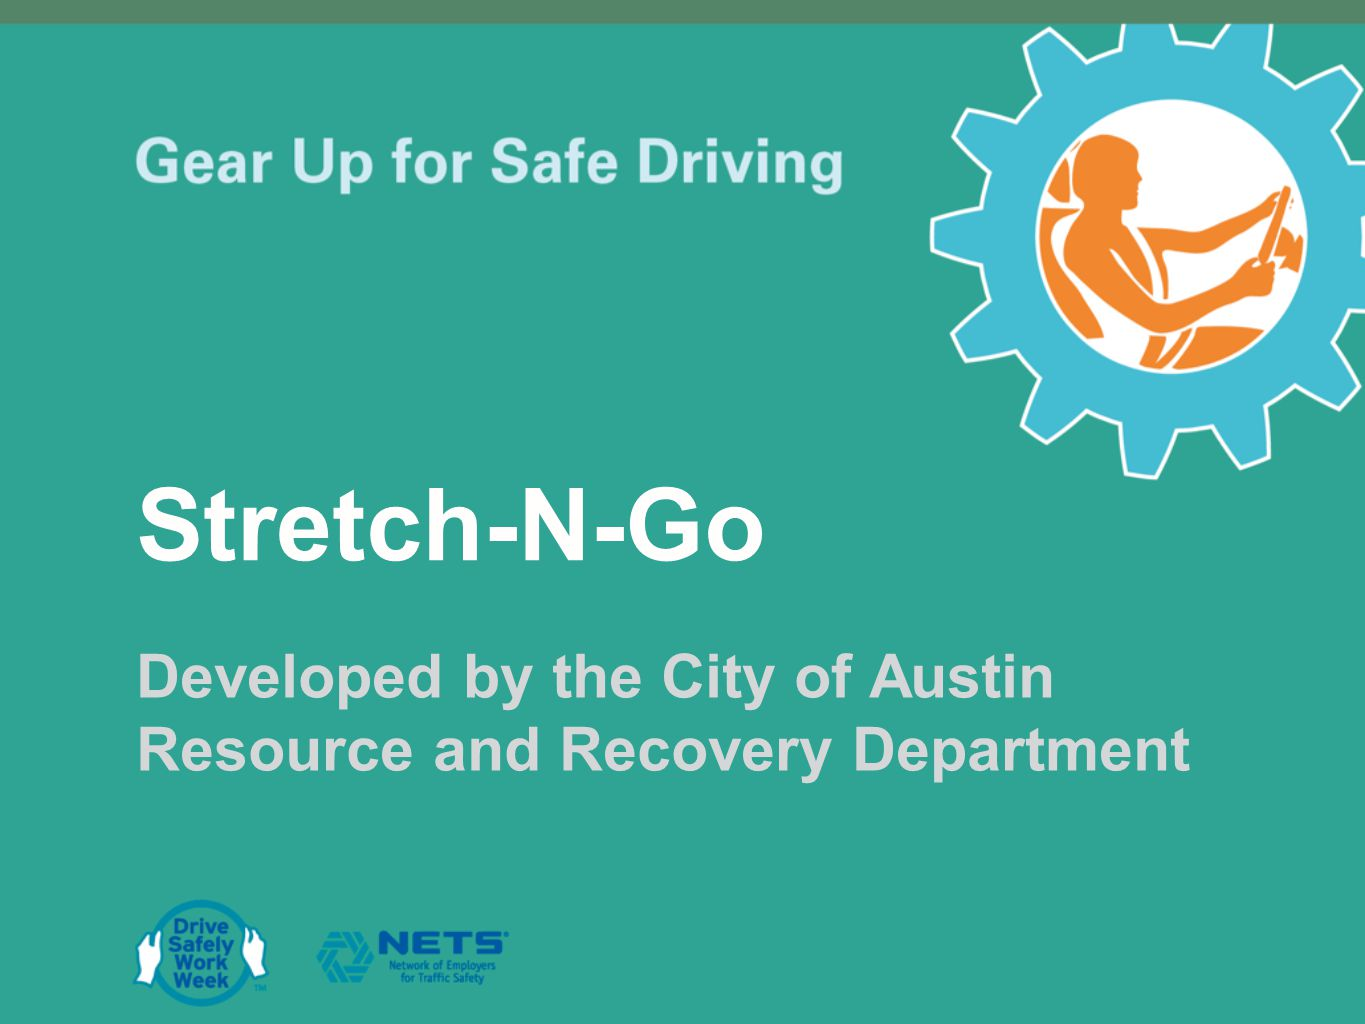 Stretch-N-Go Developed by the City of Austin Resource and Recovery Department